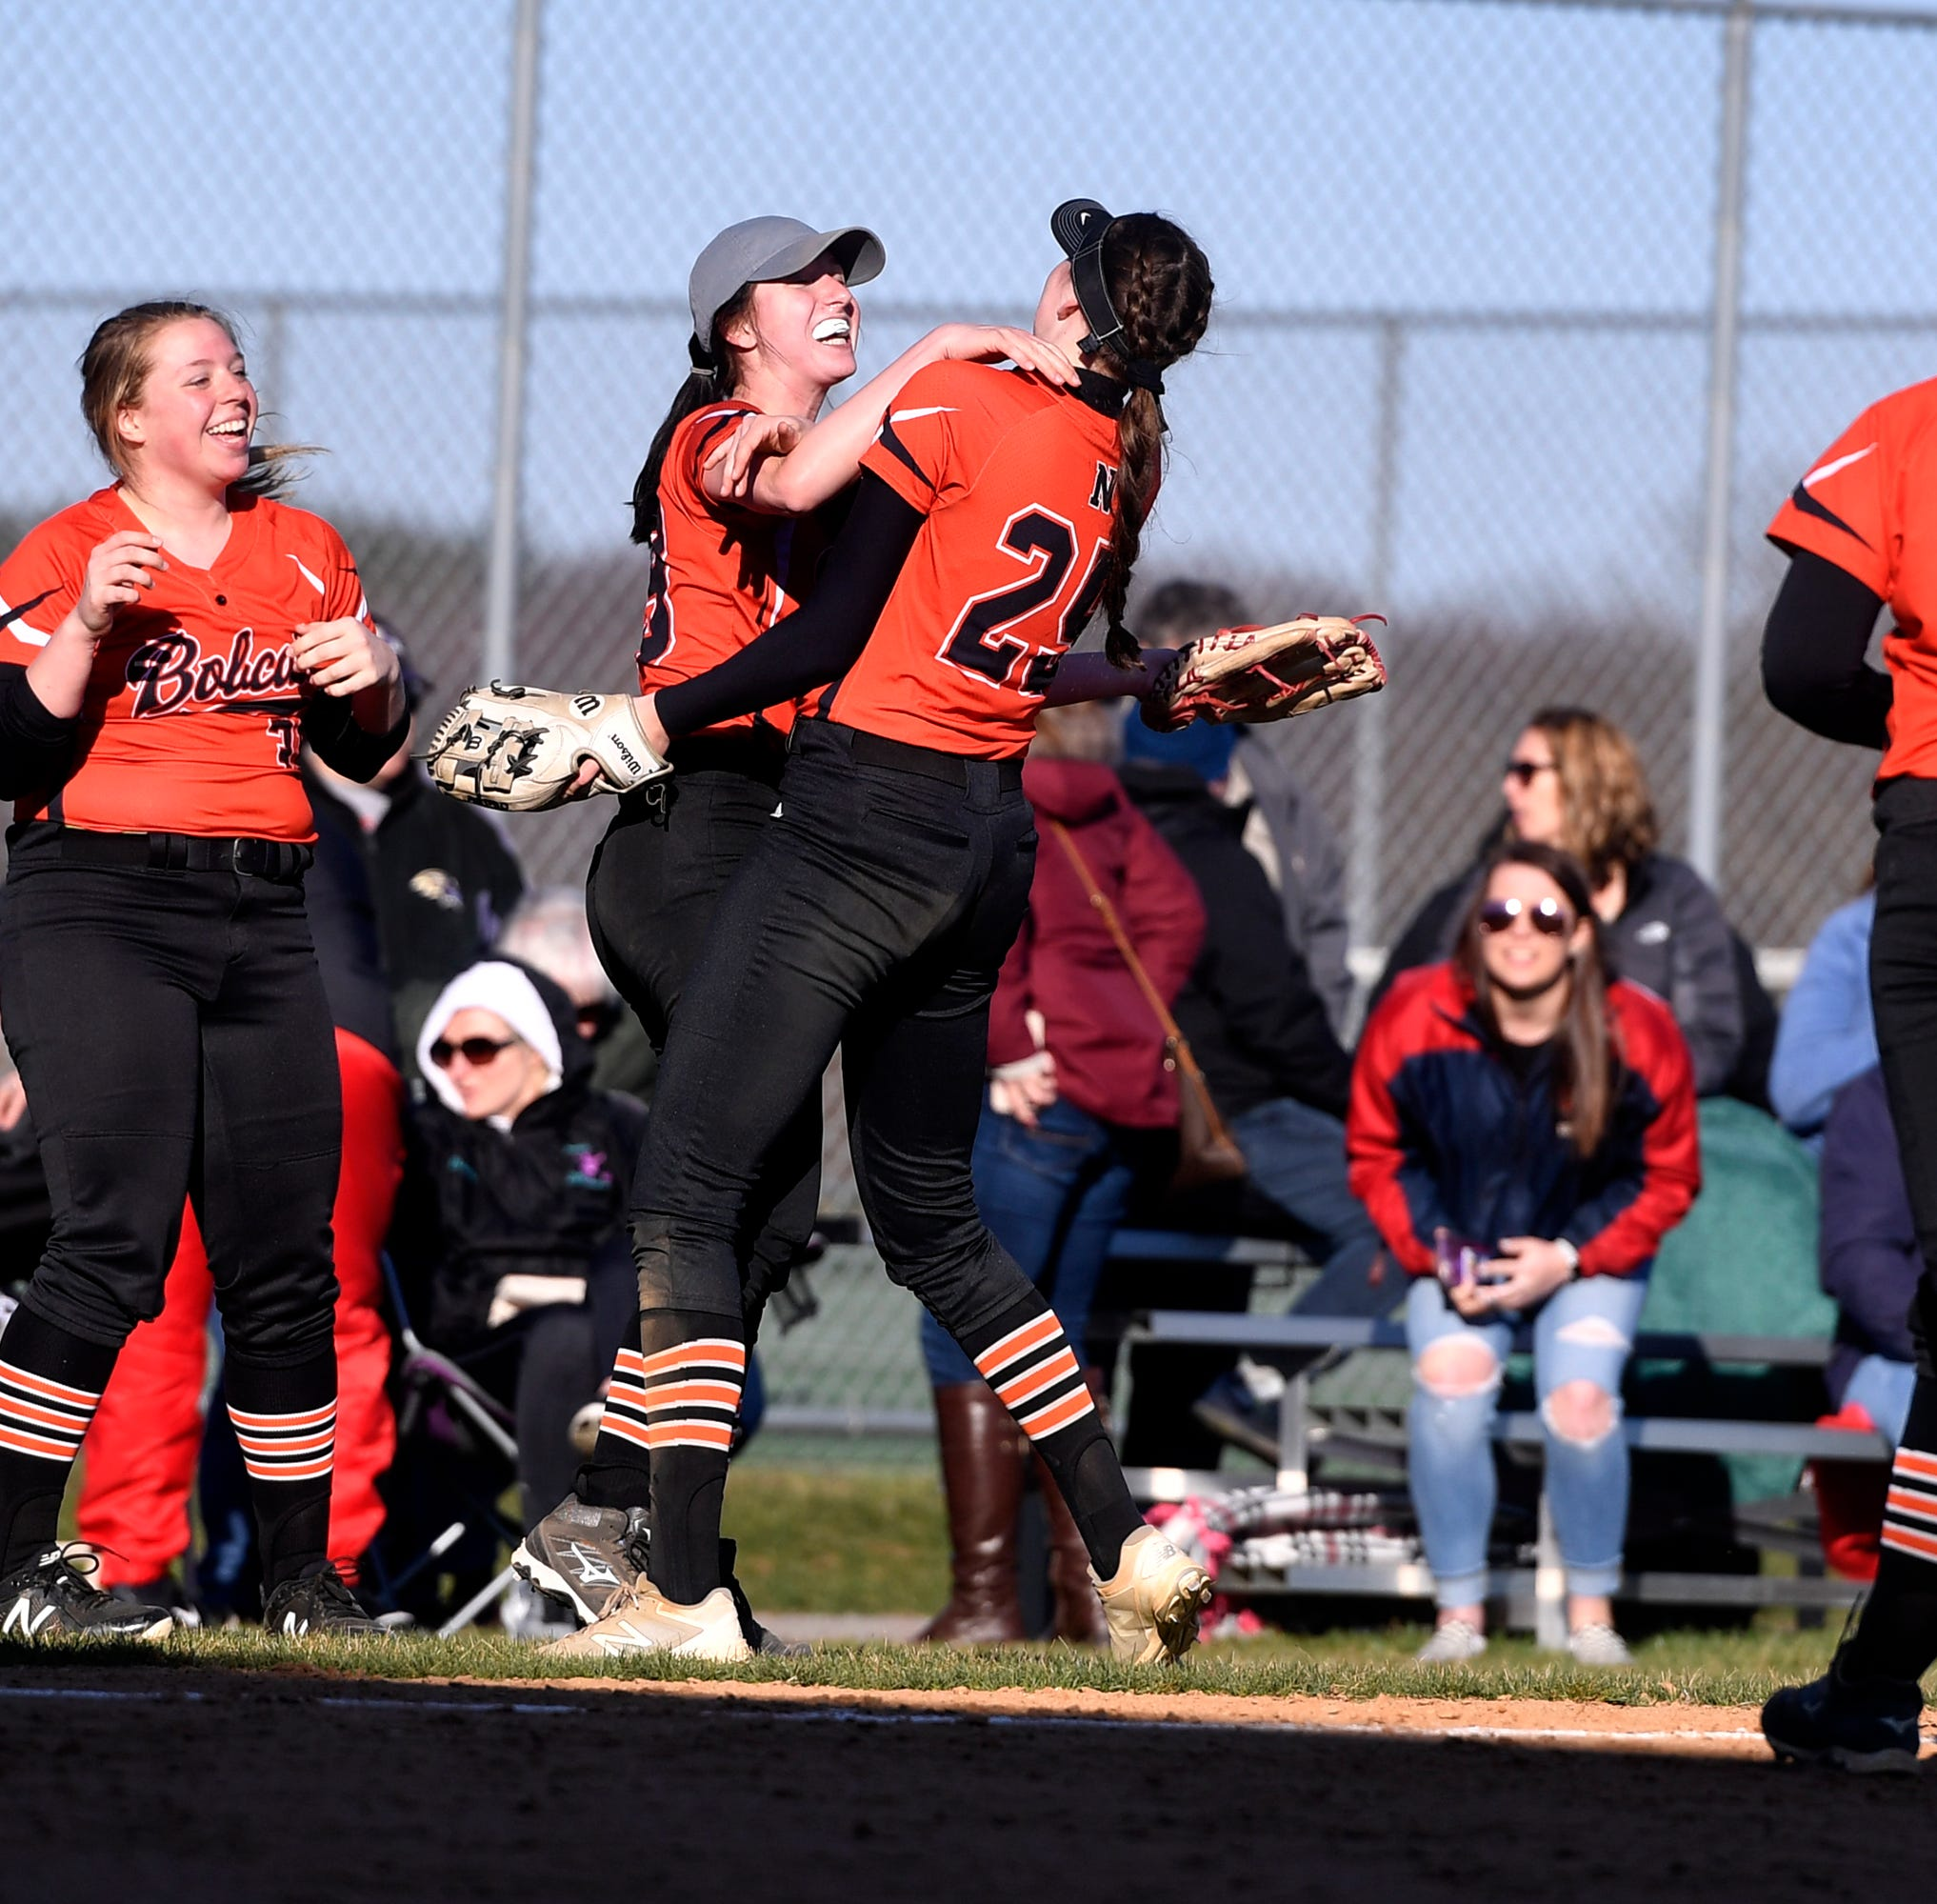 PREP ROUNDUP, MONDAY, APRIL 1: Northeastern softball team sets big goals for 2019 season